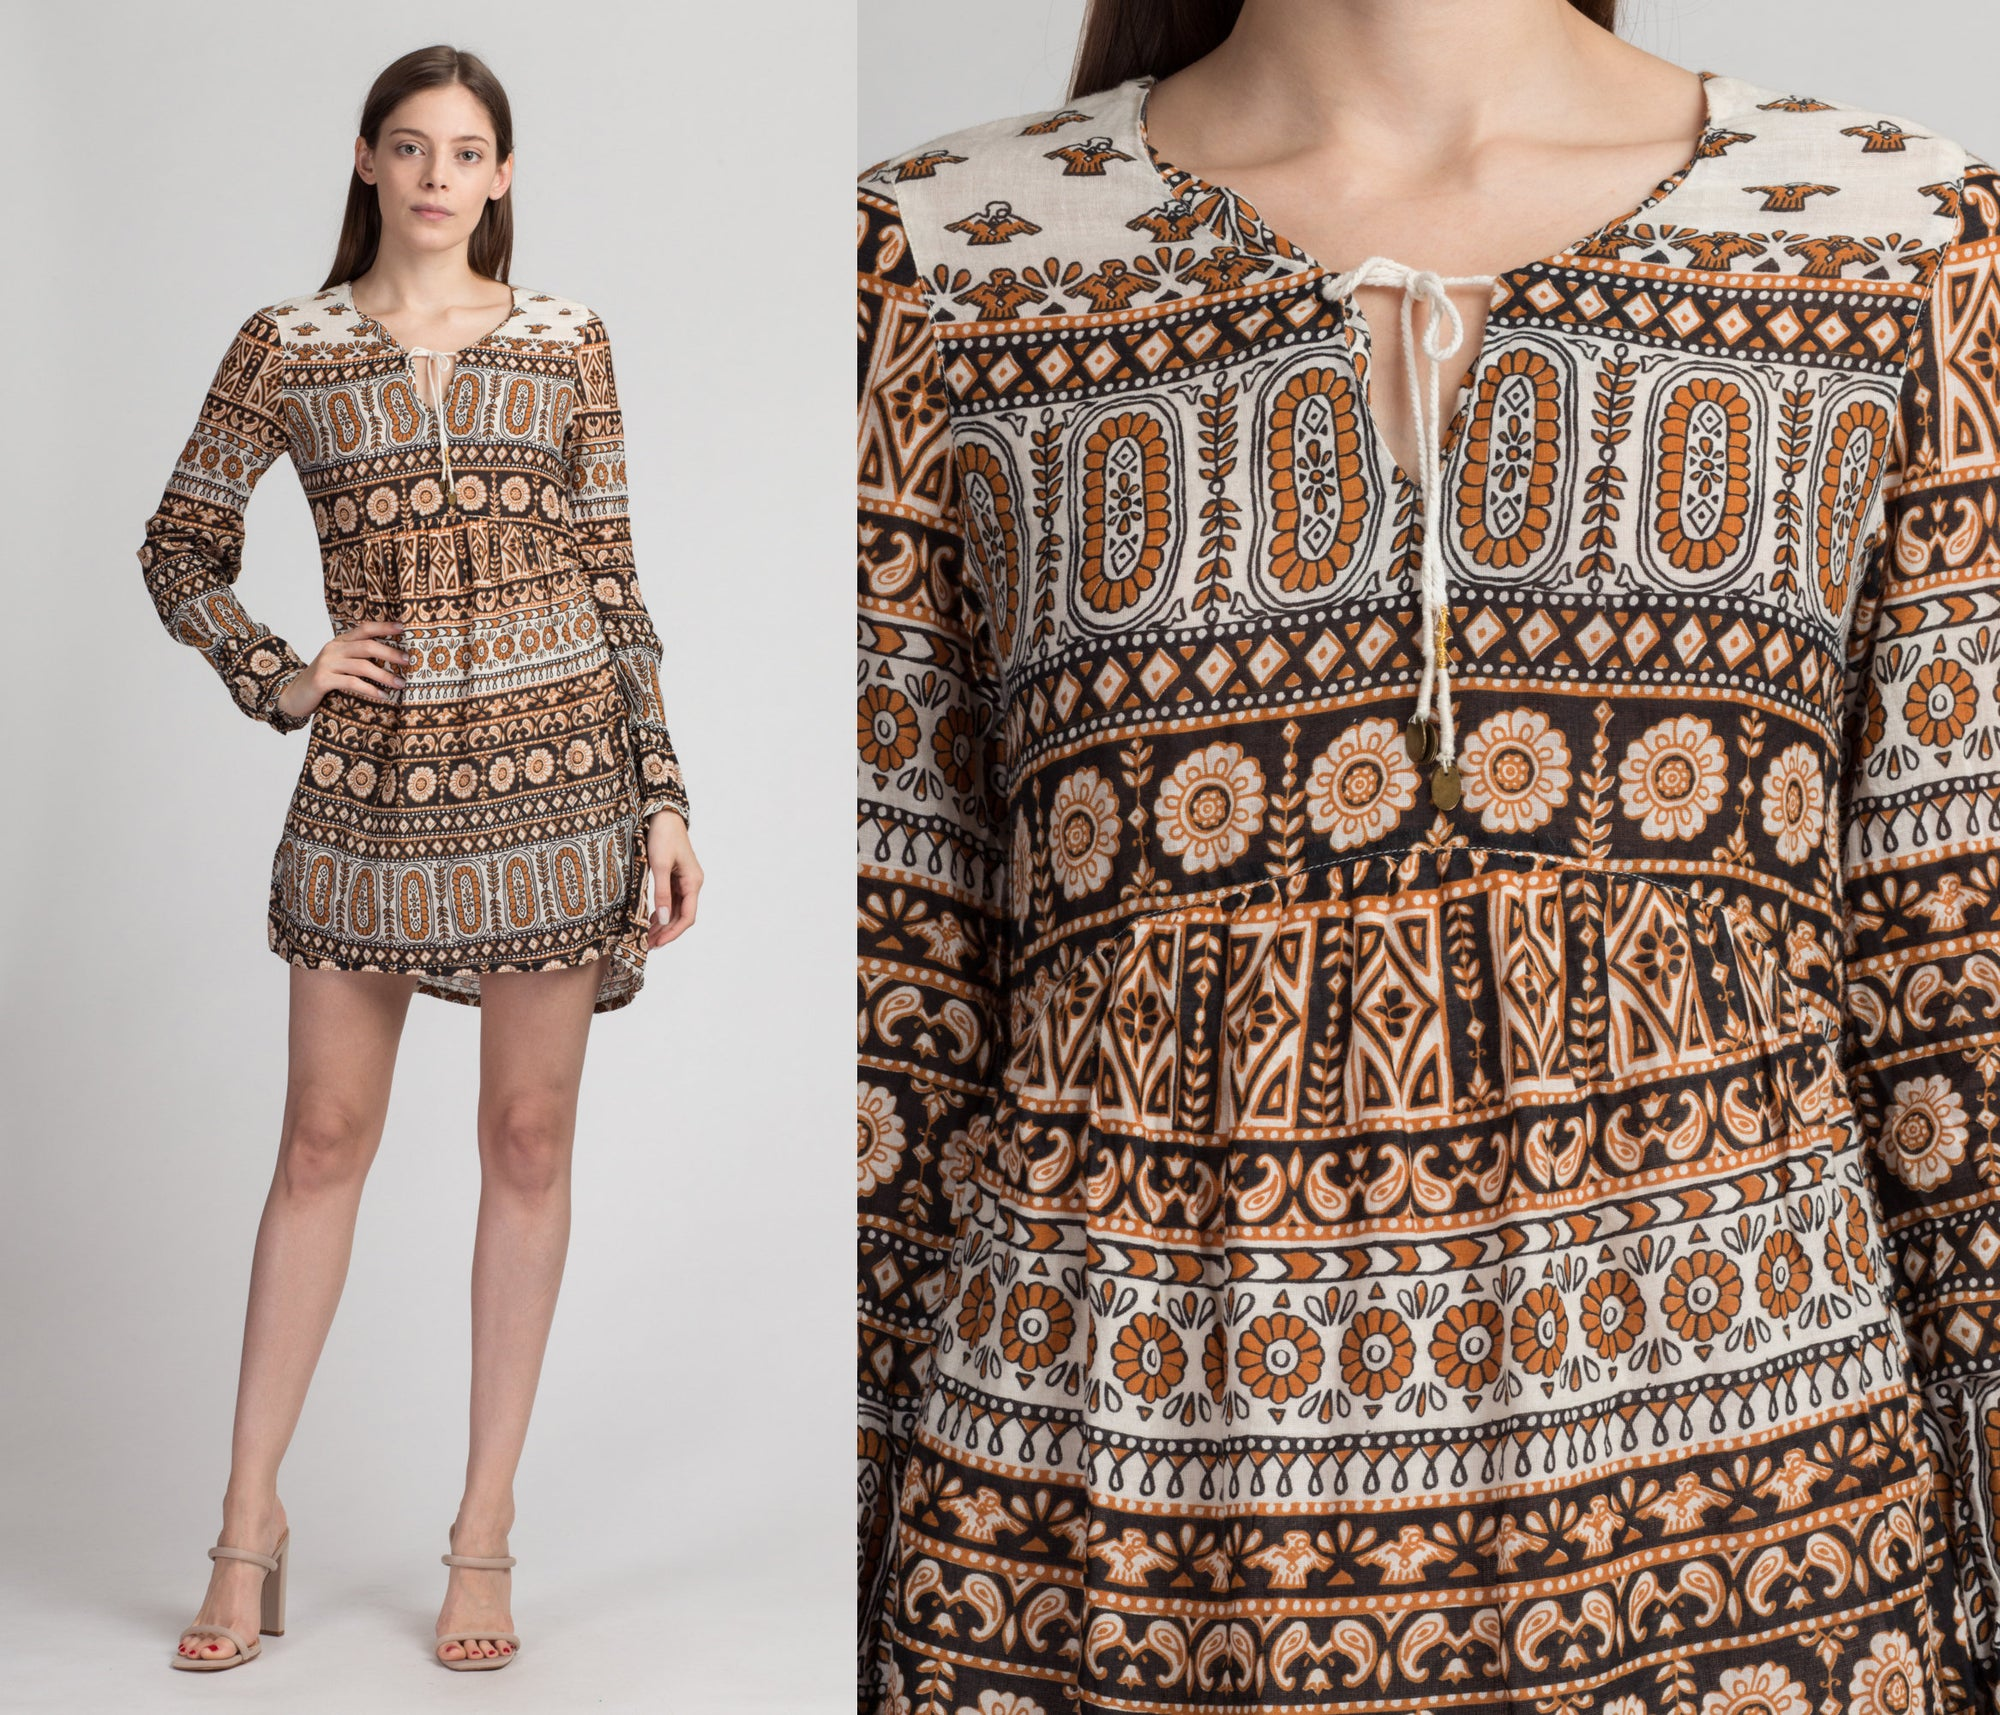 Boho Abstract Print High-Low Mini Dress - Small | Vintage Hippie Gauzy Long Sleeve Dress